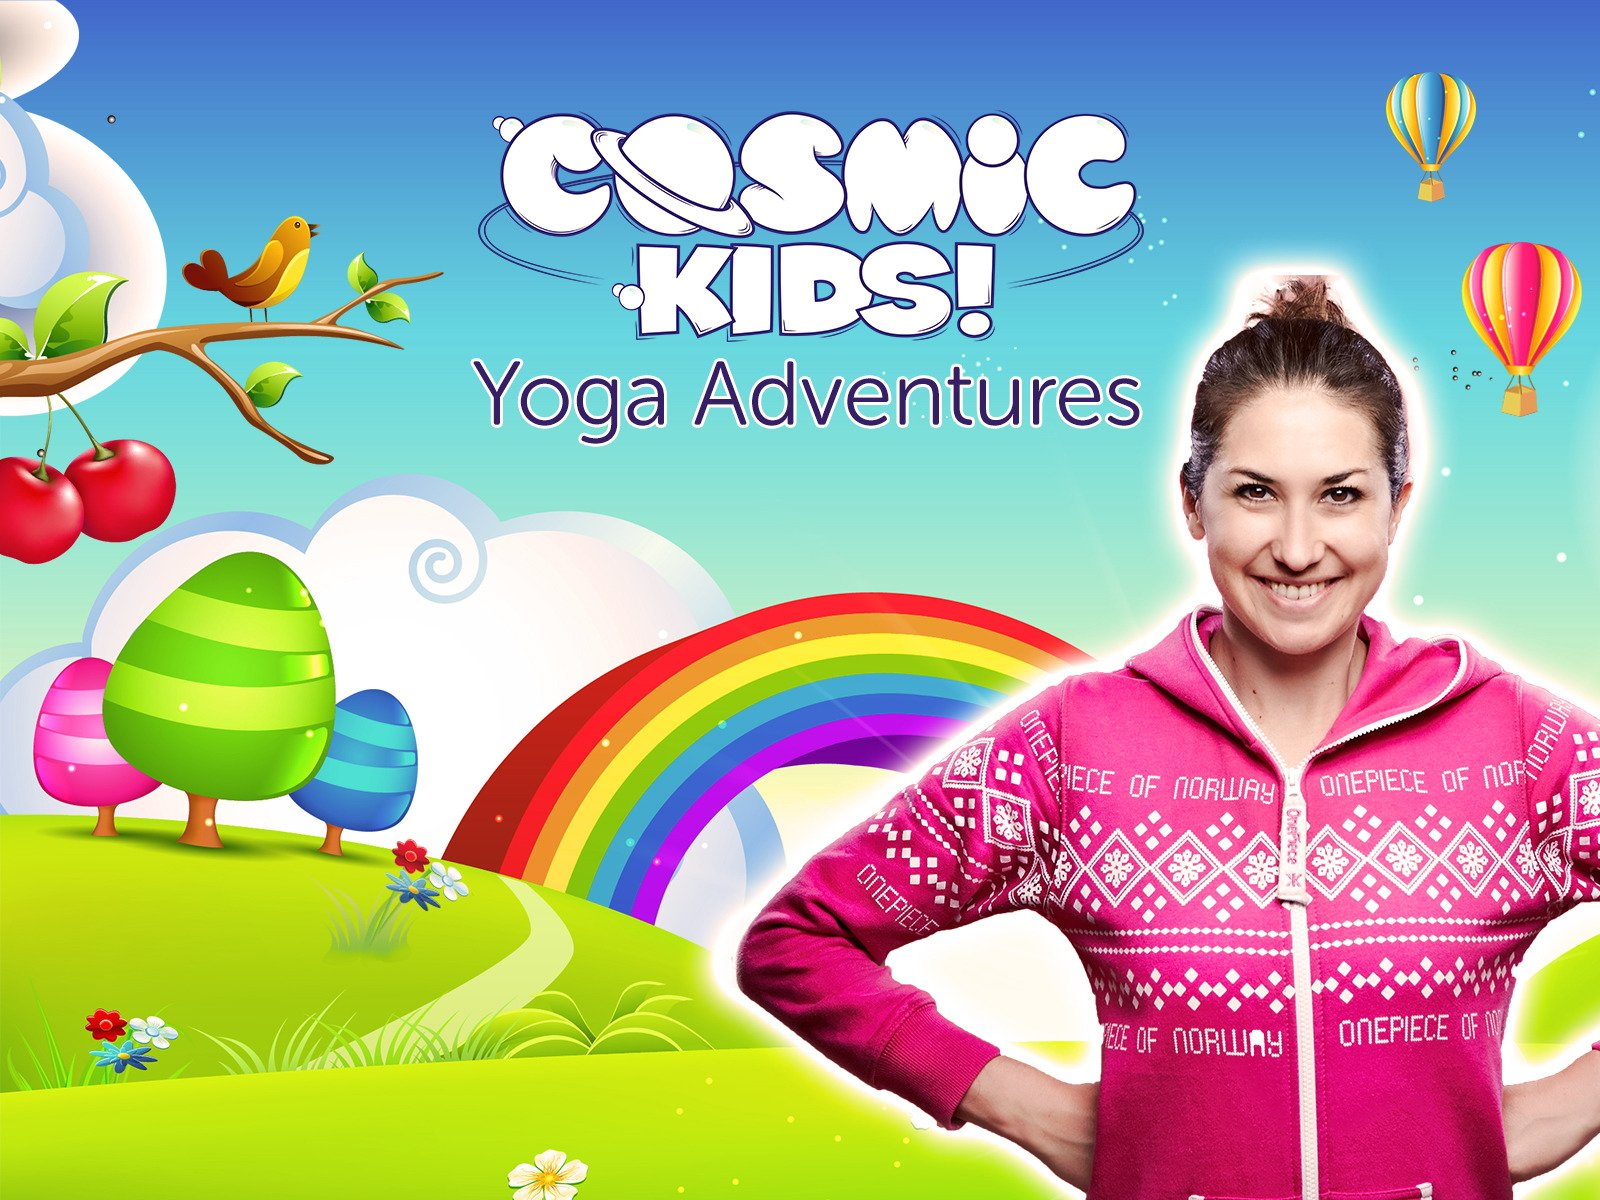 Amazon.com: Cosmic Kids Yoga Adventures: Jaime Amor, Martin Amor